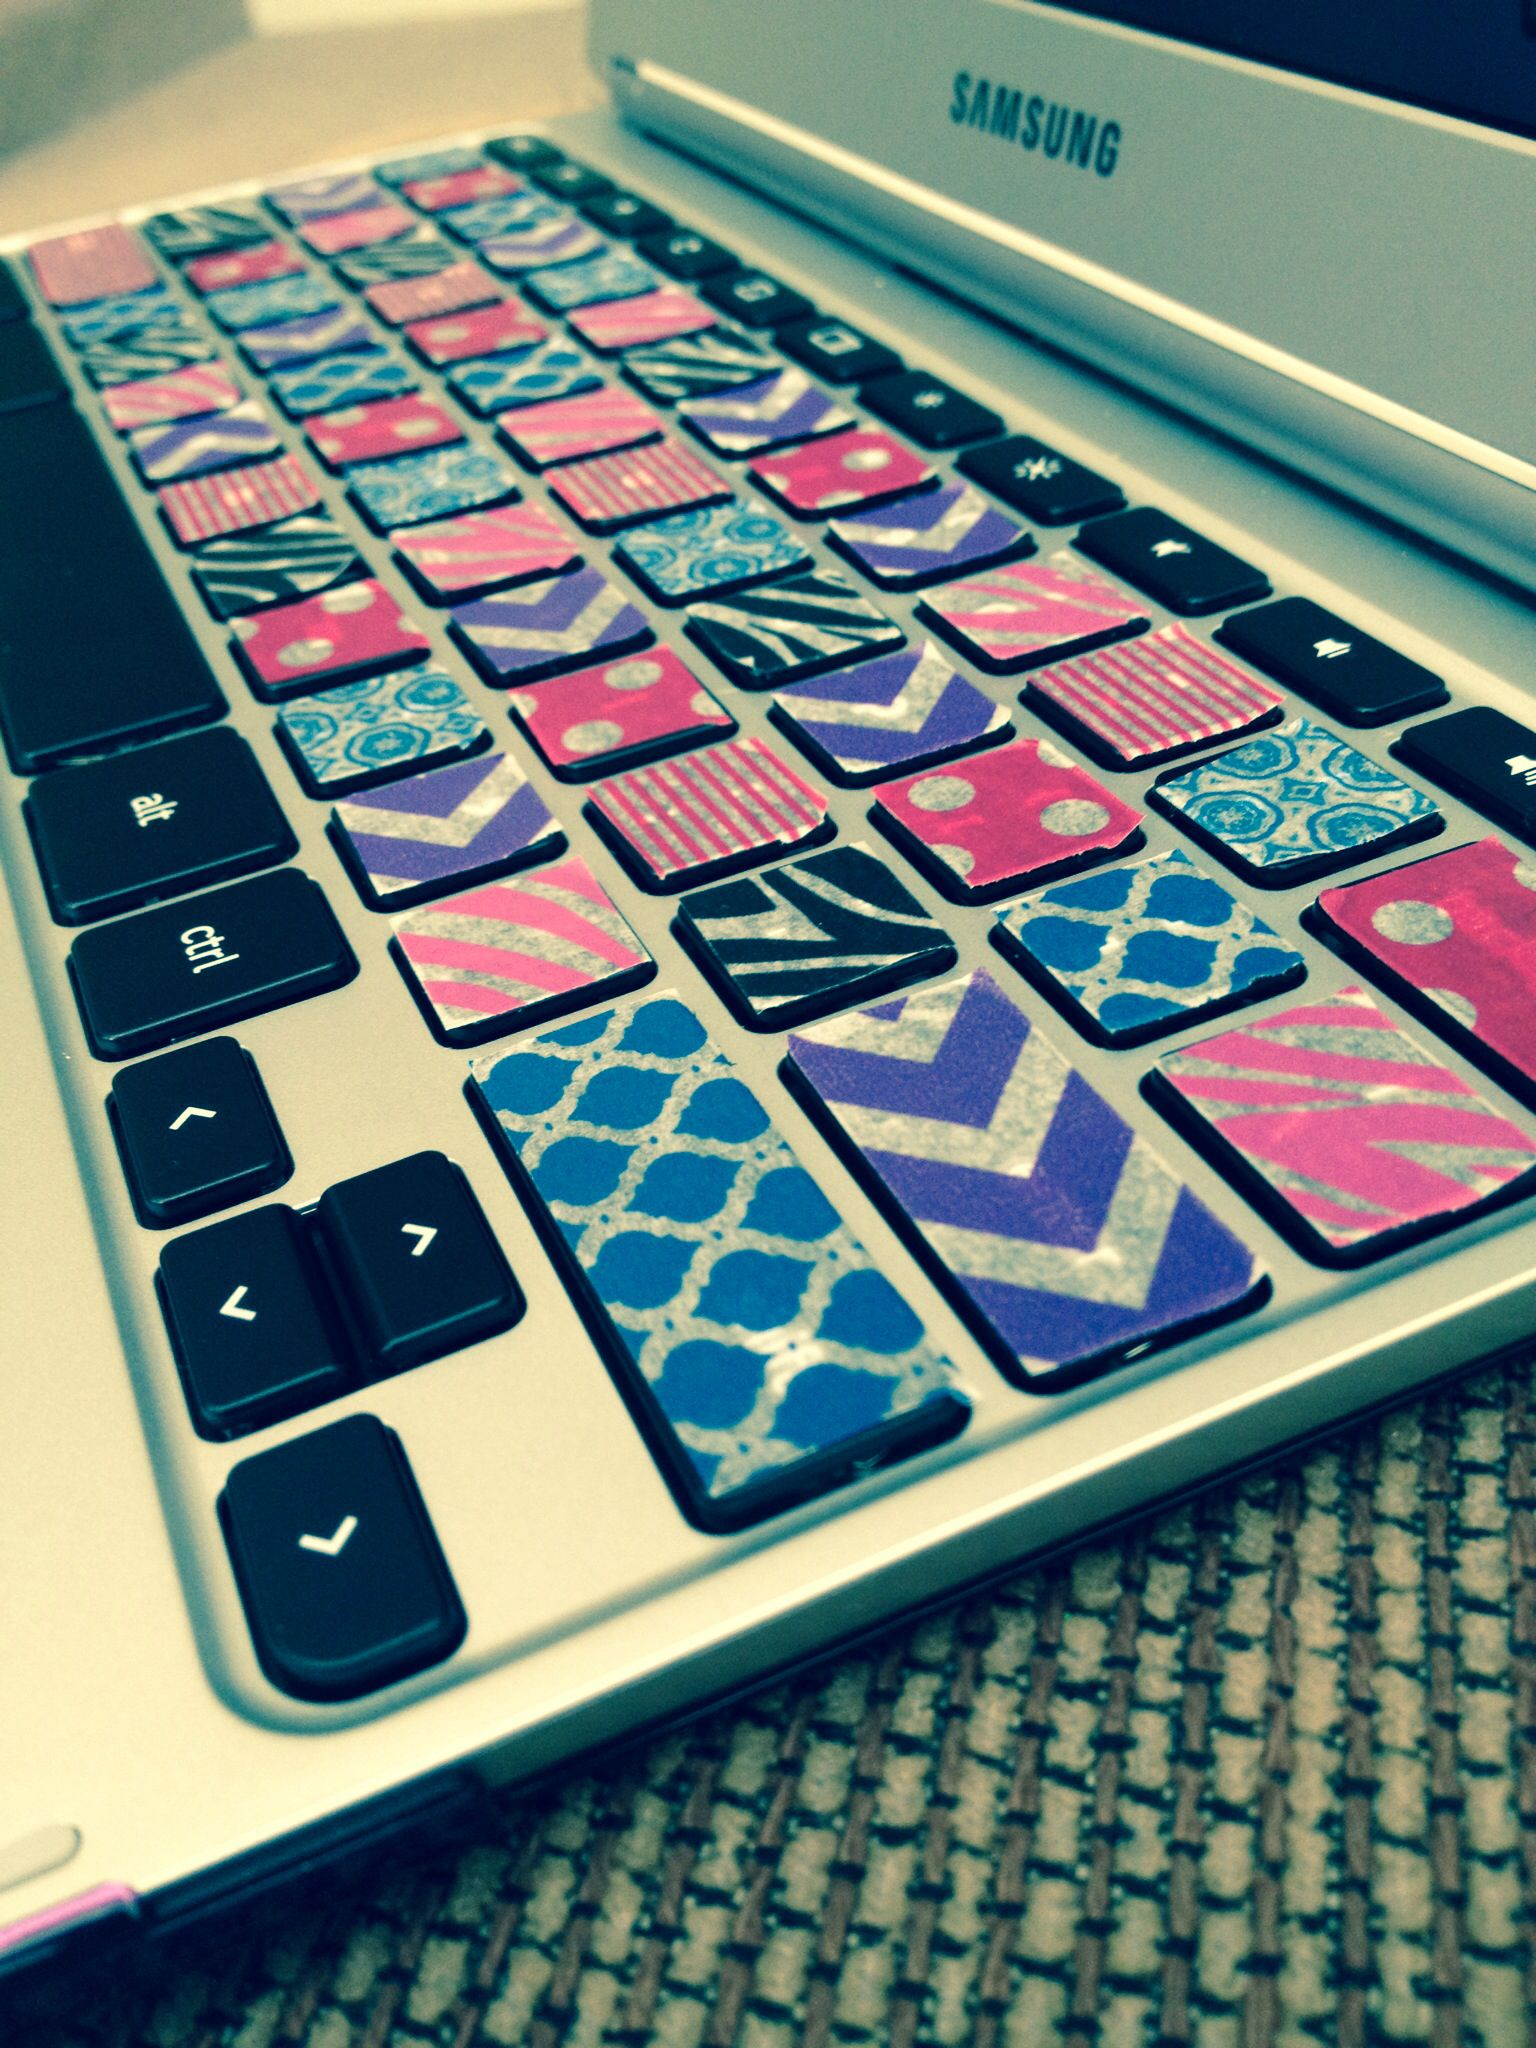 Washi Tape Over Your Keyboard Washi Tape Keyboard Washi Tape